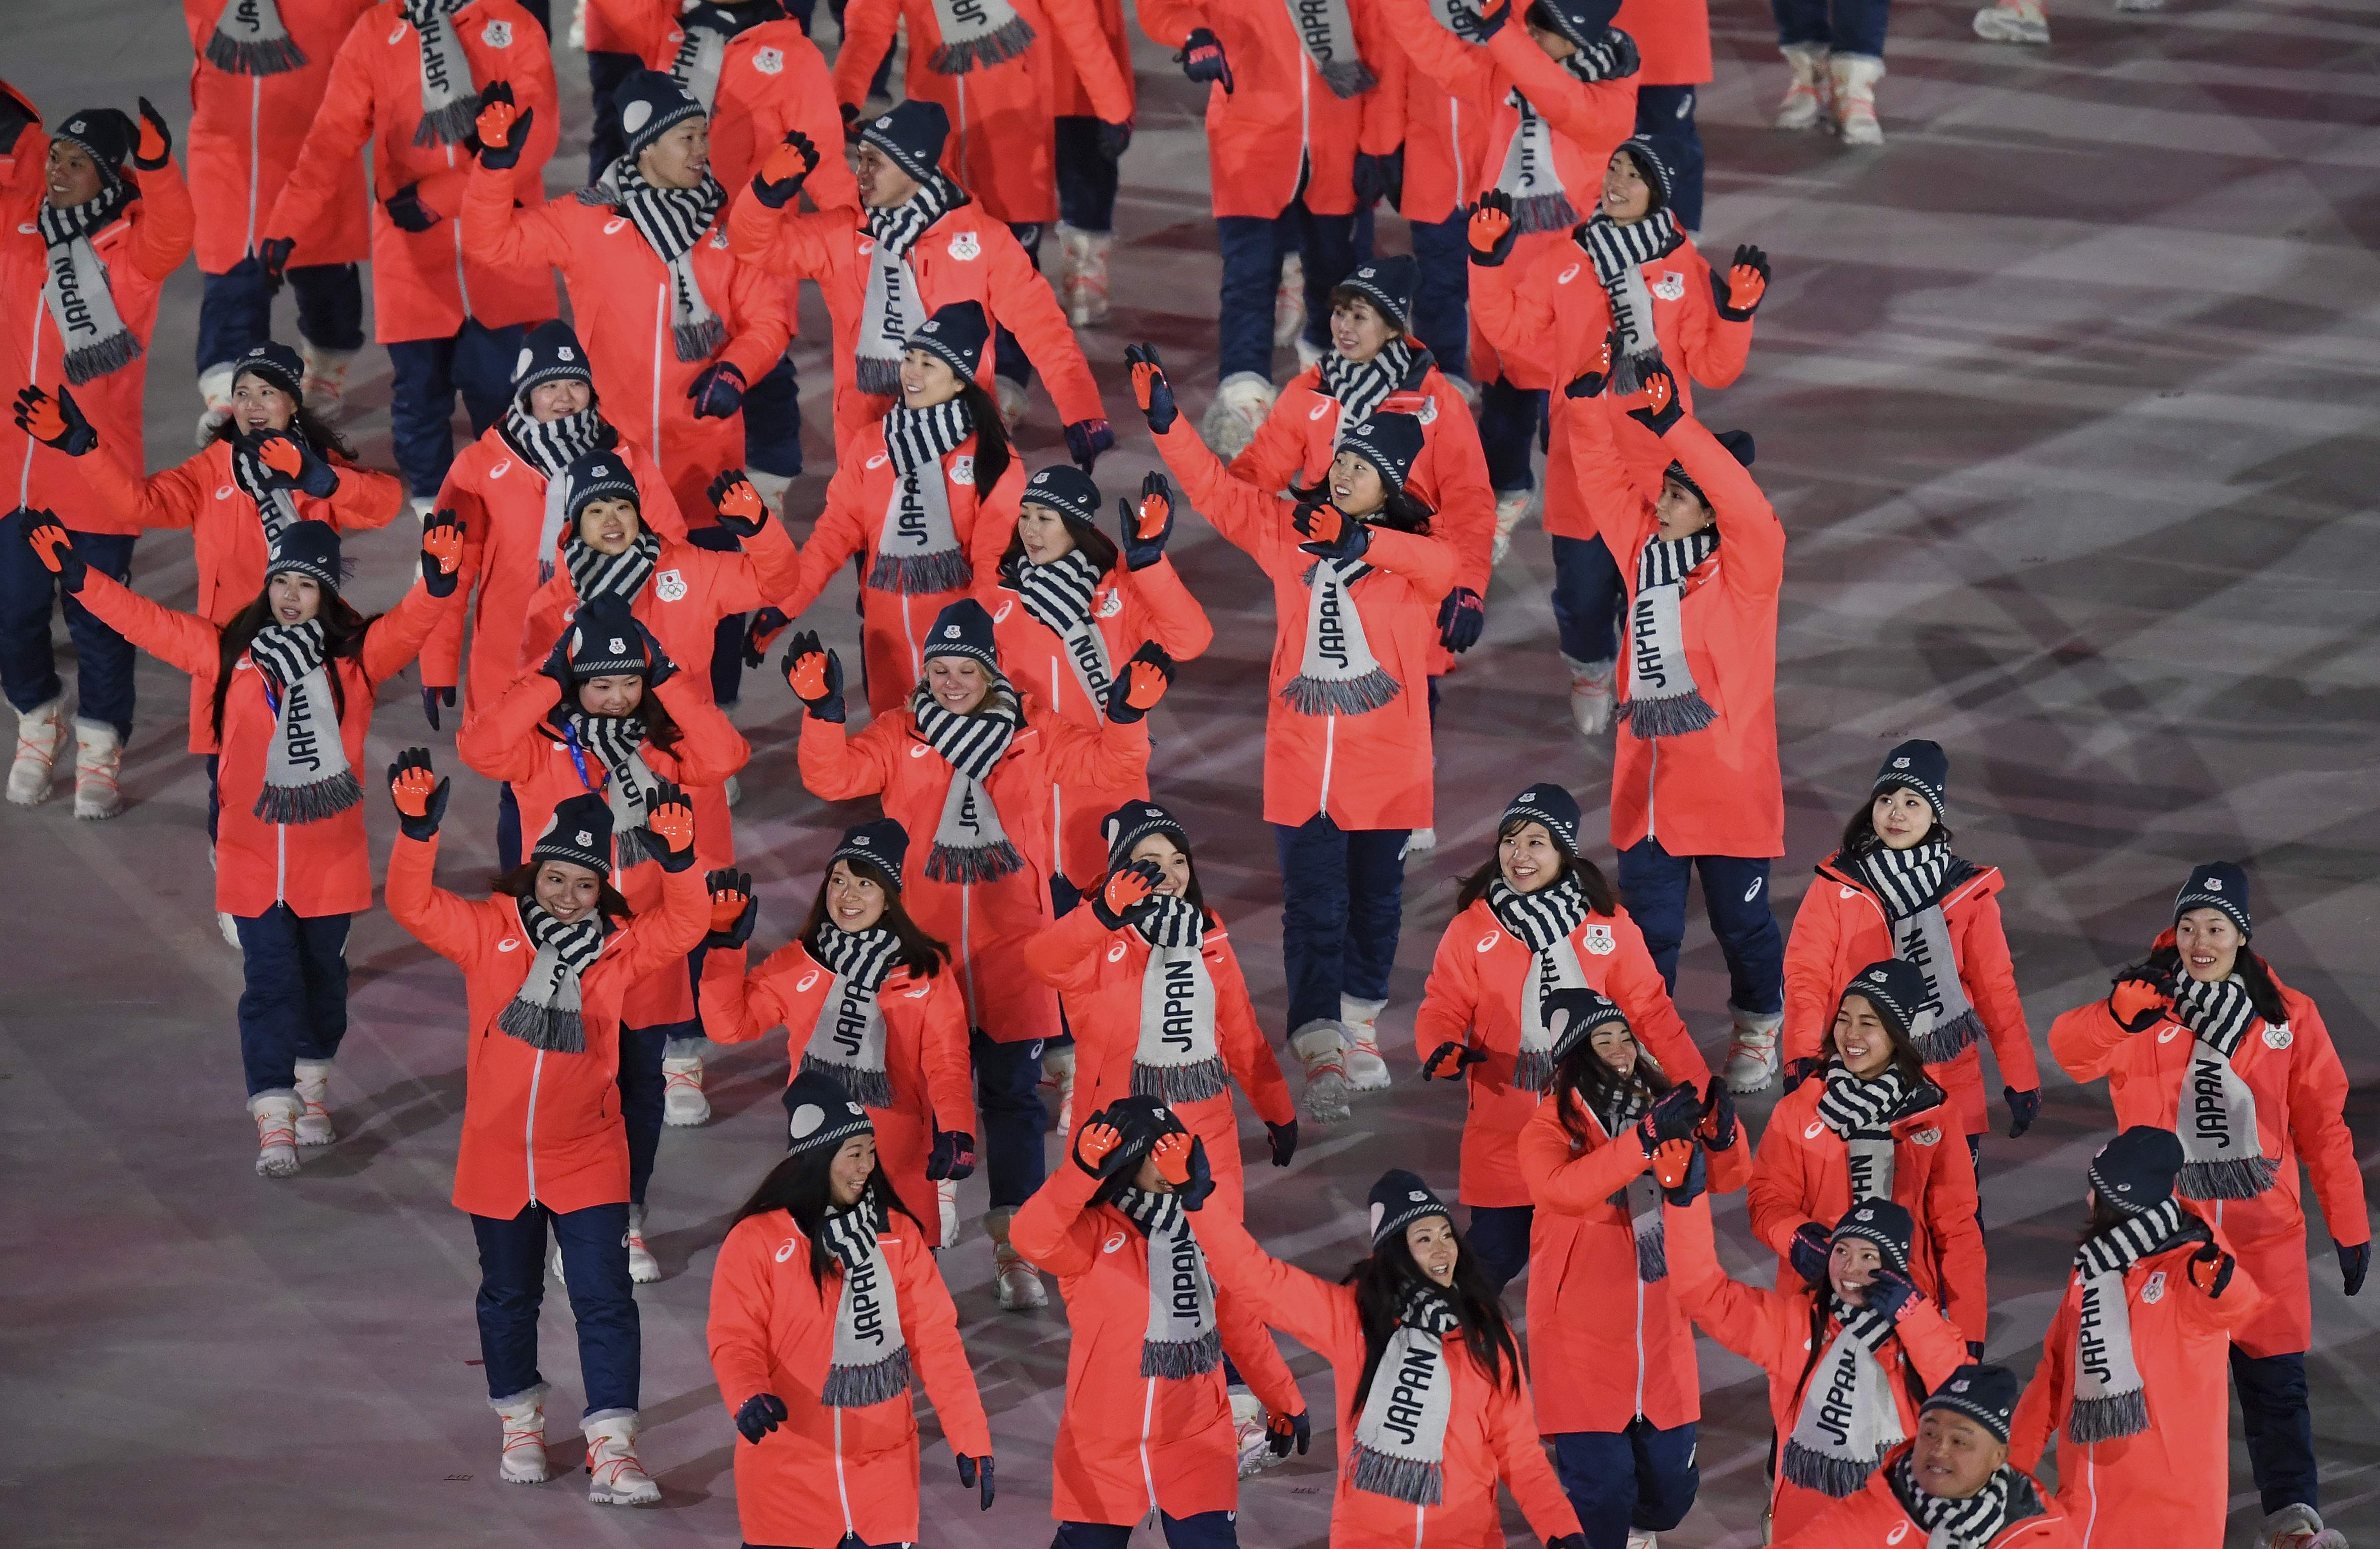 Japan arrives during the opening ceremony of the 2018 Winter Olympics in Pyeongchang, South Korea, Friday, Feb. 9, 2018. (Franck Fife/Pool Photo via AP)